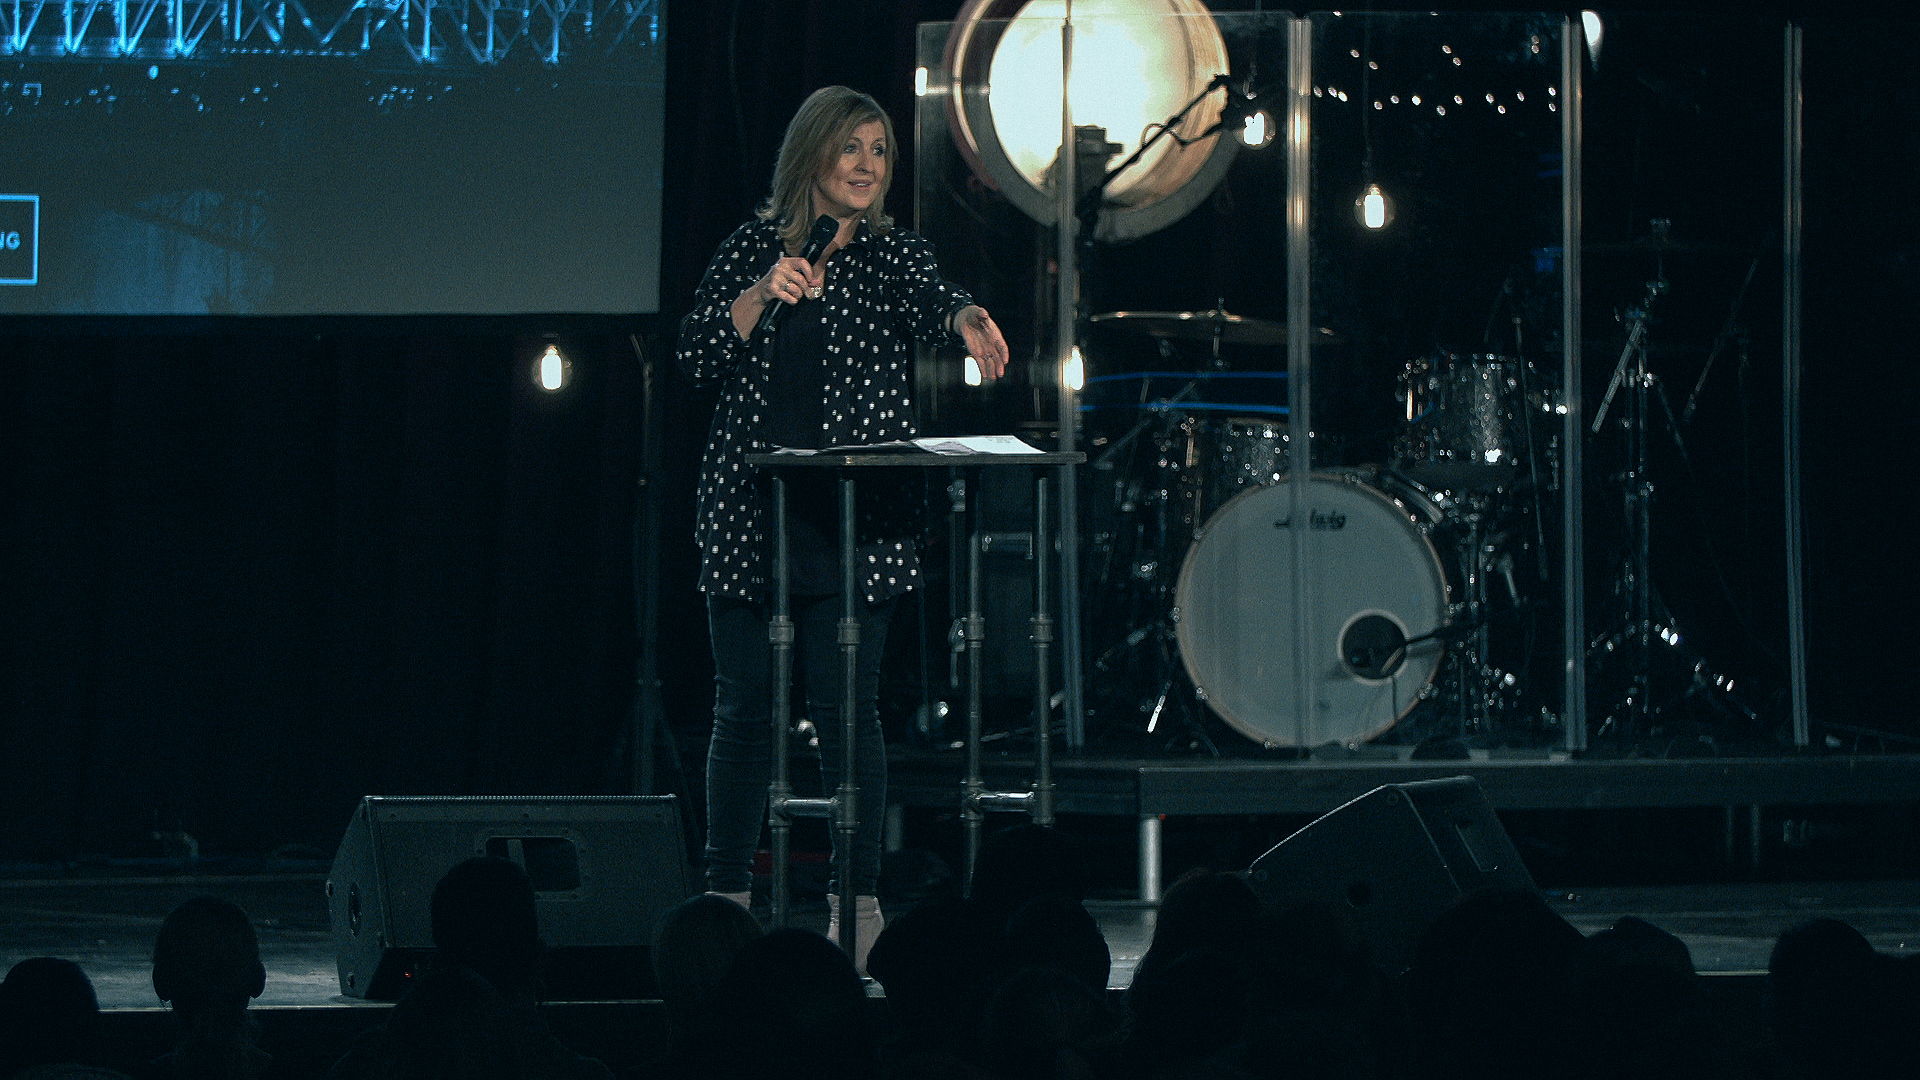 Tuesday 31st May 2016 Darlene Zschech